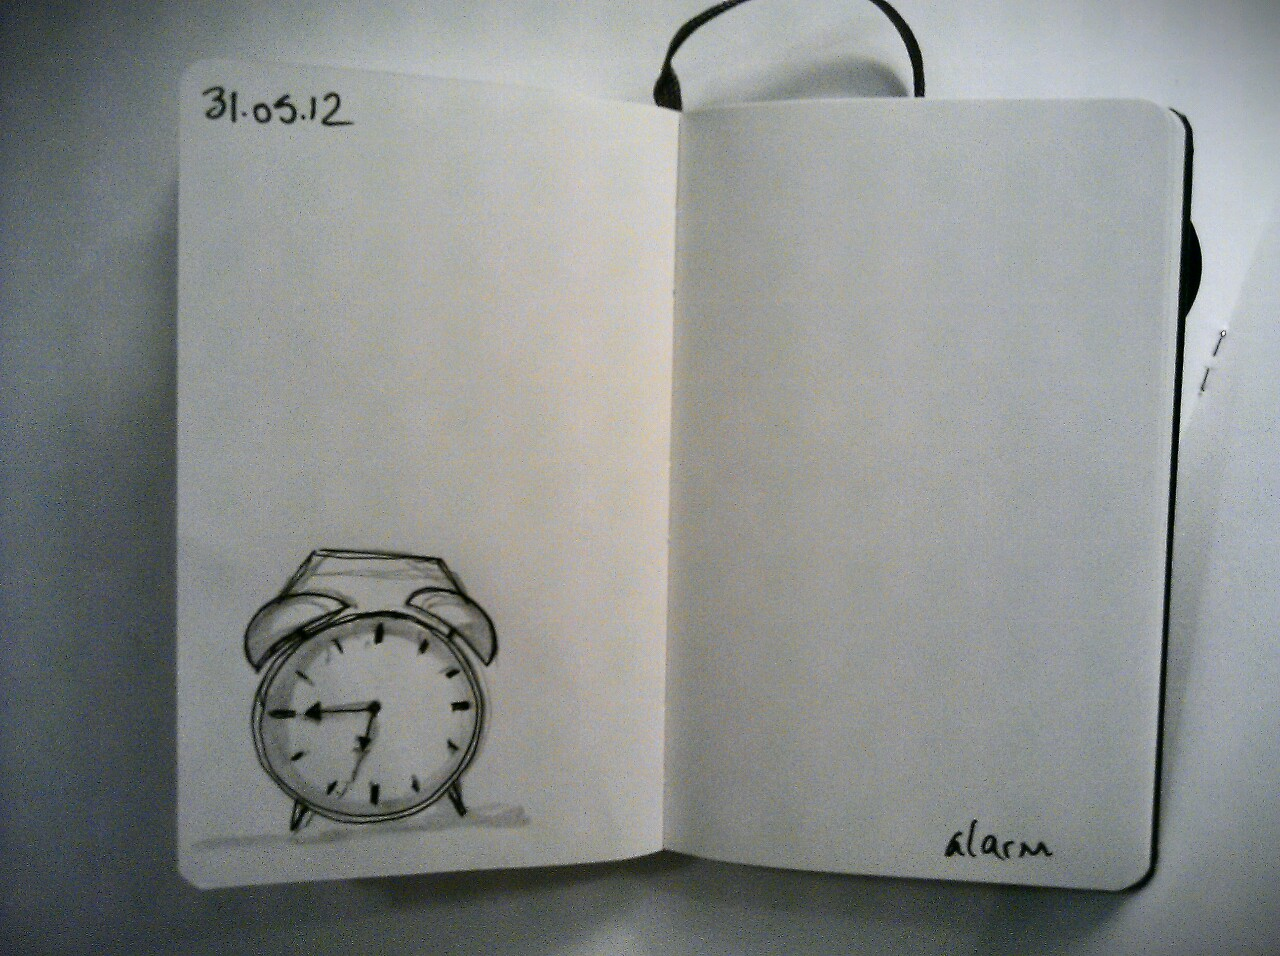 365 drawings later … day 121 … alarm (no sooner do I go to bed than I have to get up again)